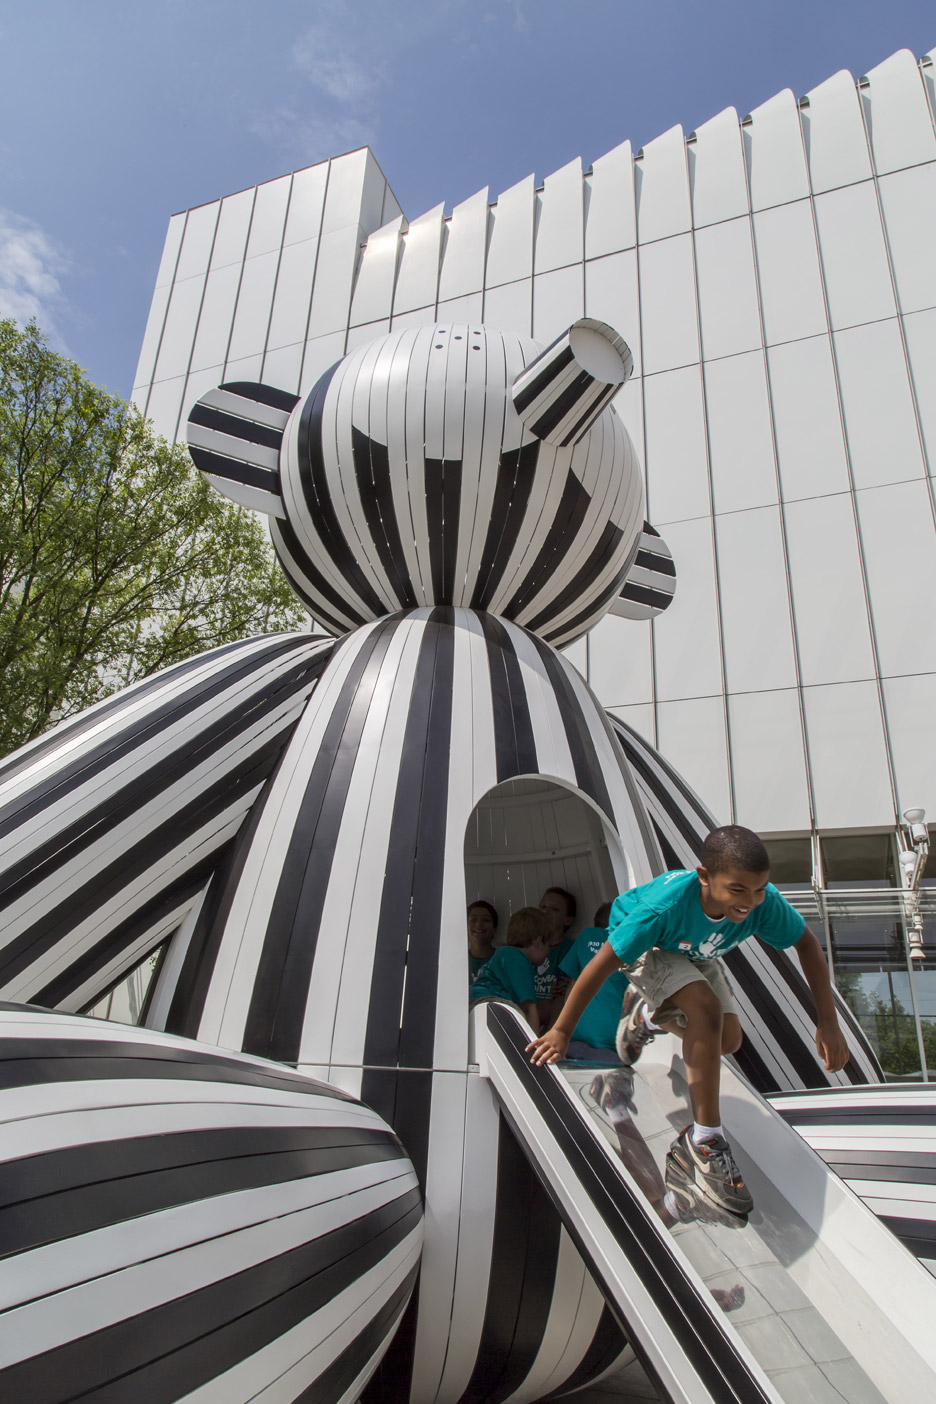 Tiovivo: whimsical sculptiures exhibition by Jaimé Hayon at the High Museum of Art in Atlanta